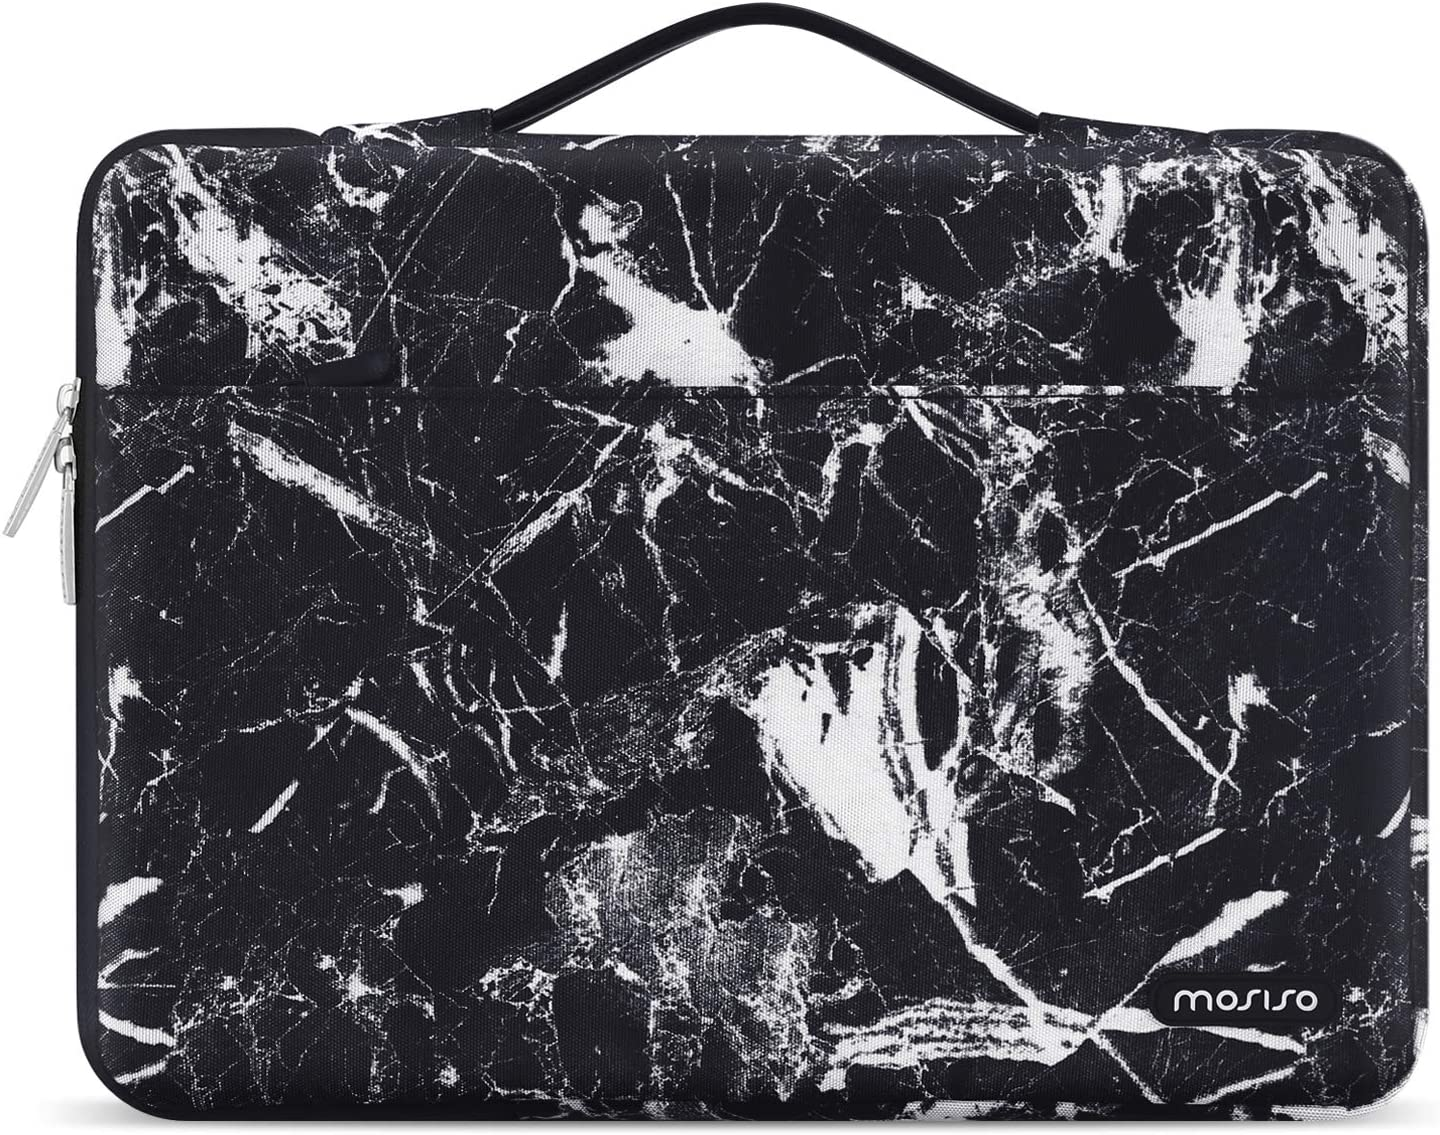 MOSISO Laptop Sleeve 360 Protective Case Bag Compatible with 13-13.3 inch MacBook Pro, MacBook Air, Notebook, Polyester Pattern Shockproof Handbag with Trolley Belt, Black Marble